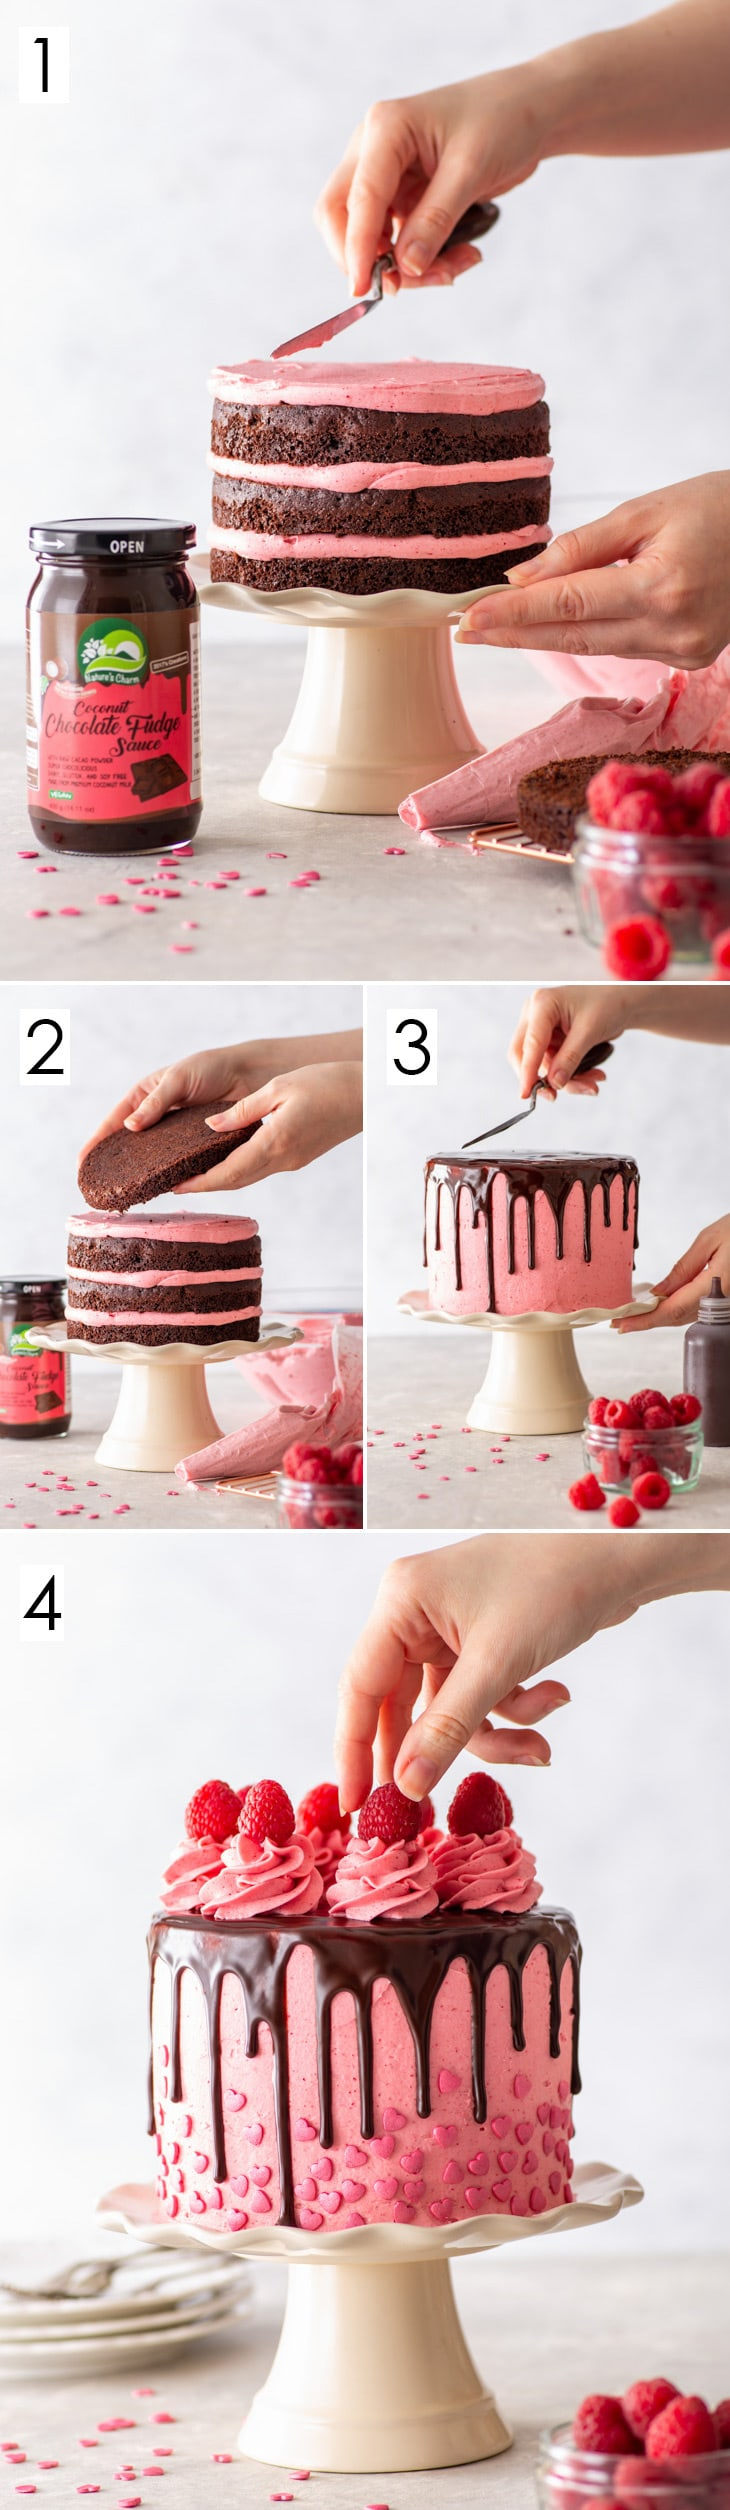 4-step process of assembling the vegan chocolate raspberry cake.